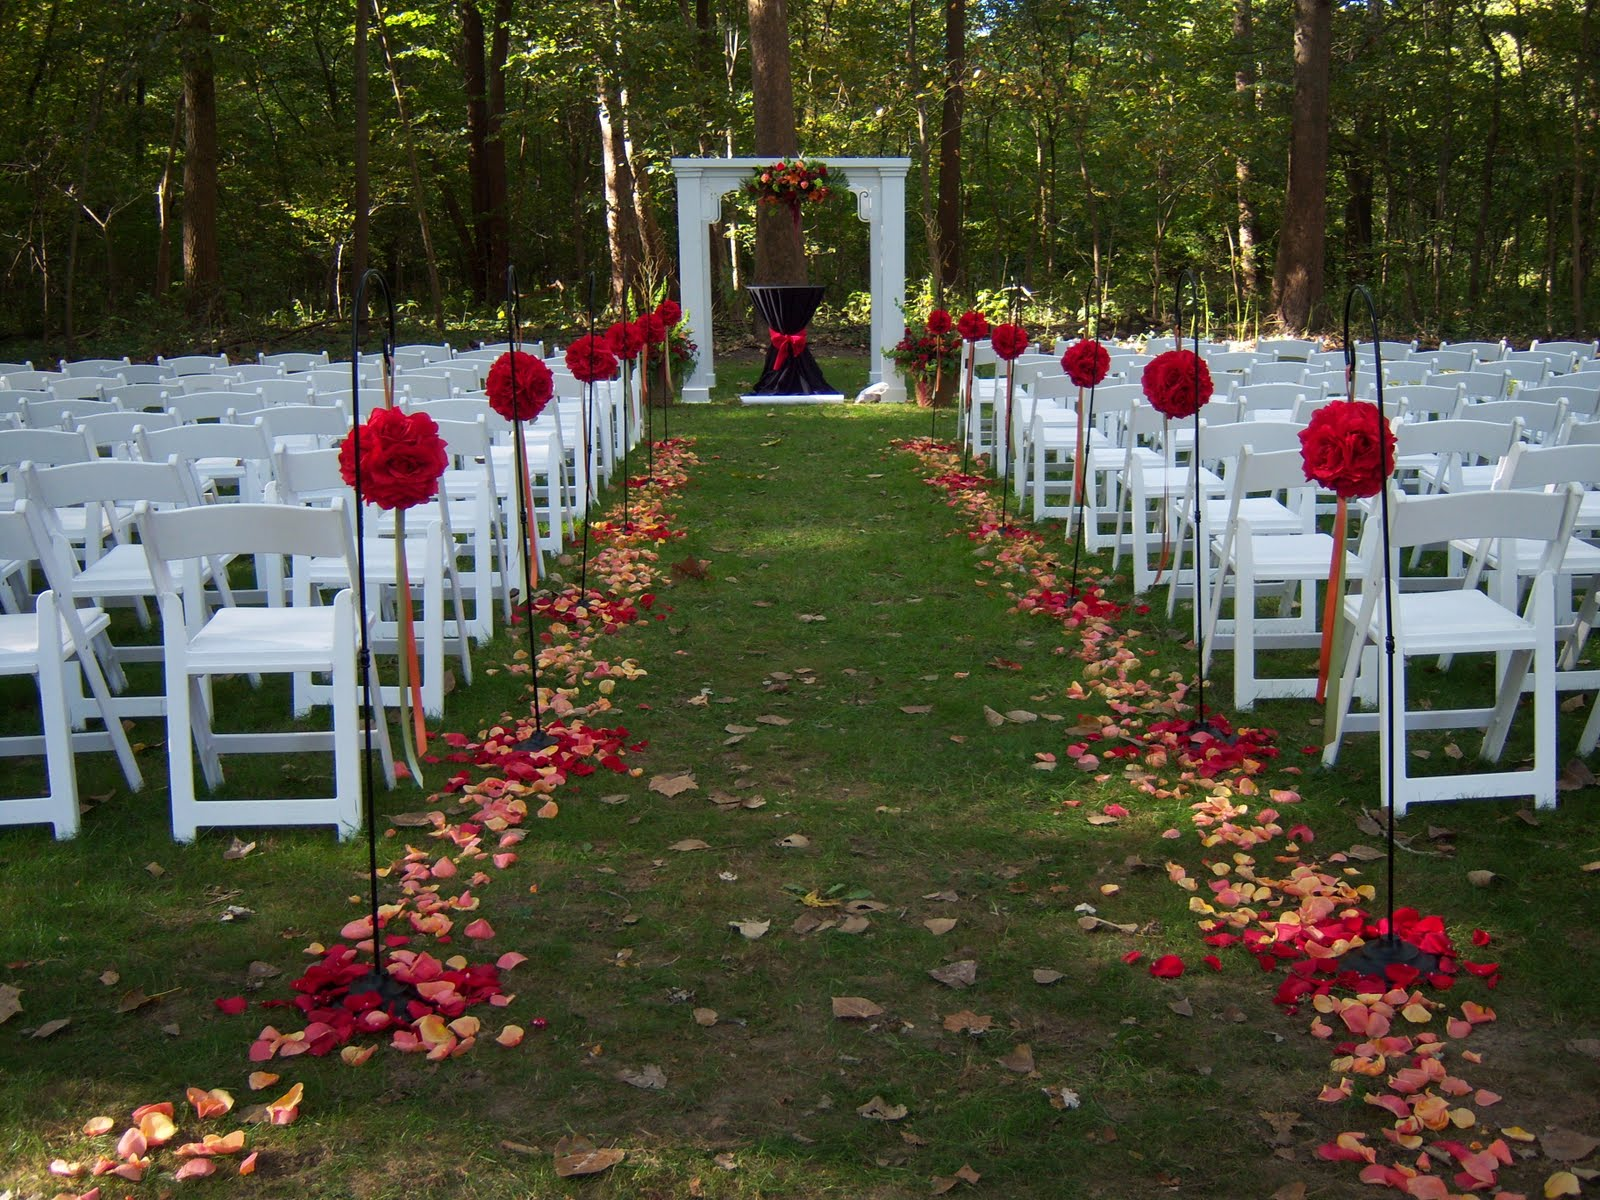 My Wedding: fall color wedding ideas